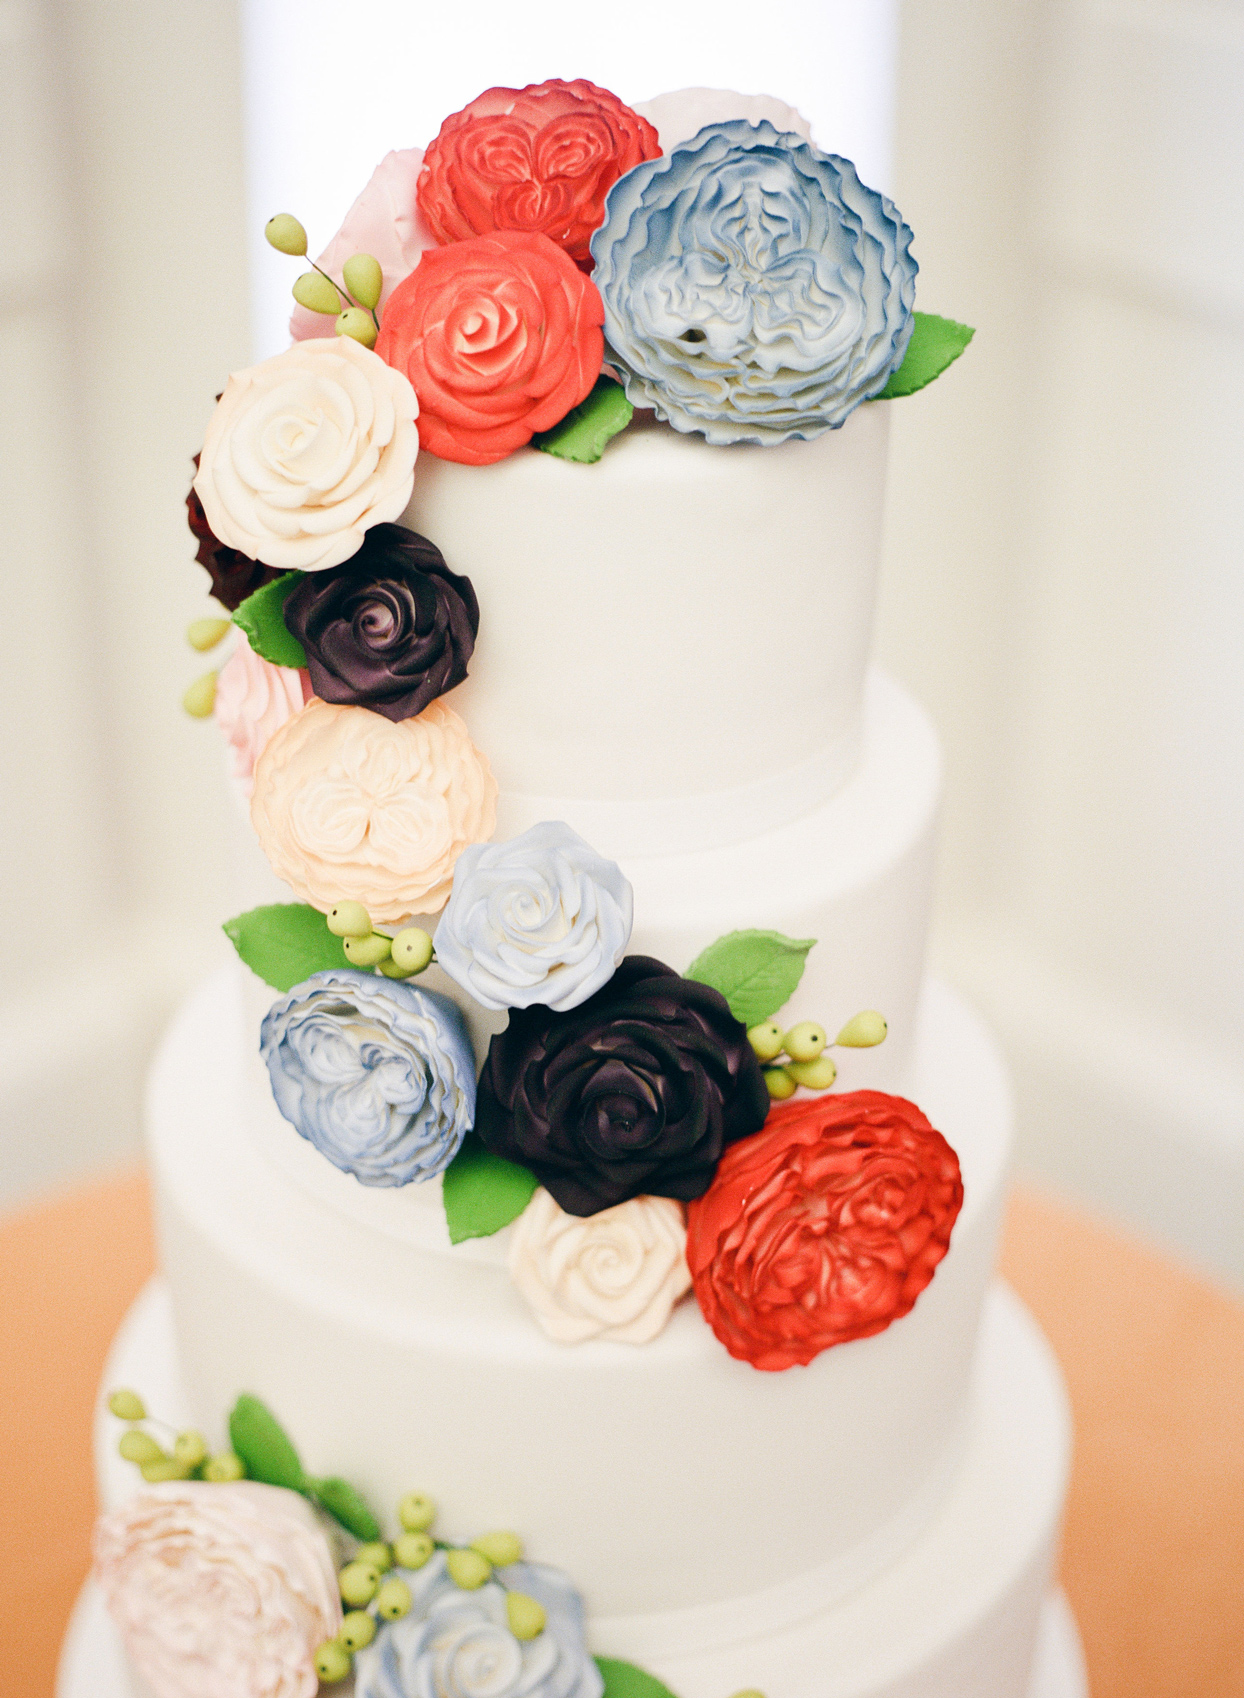 tiered wedding cake decorated with sugar flowers